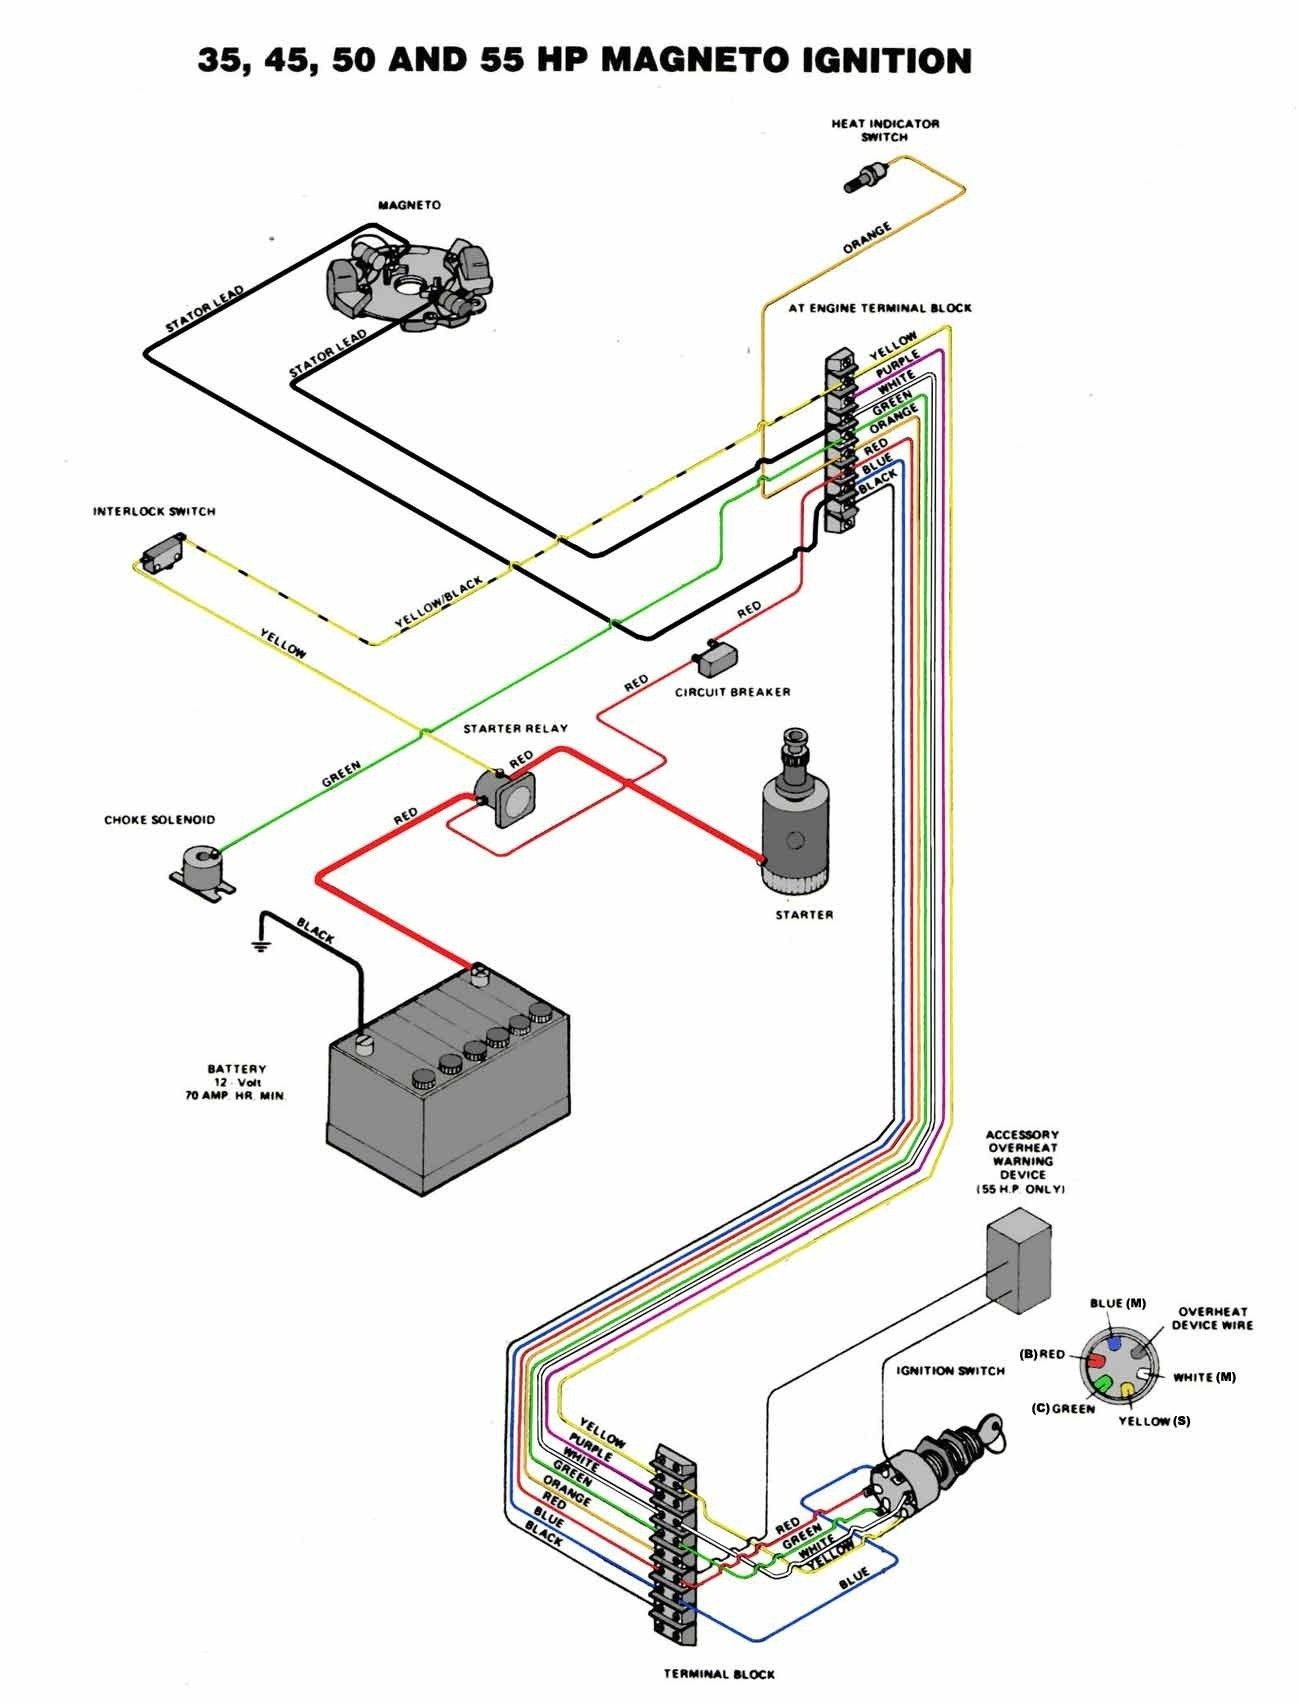 Inspirational Boat Wiring Diagram Sample Diagrams Digramssample Diagramimages Wiringdiagramsample Wiringdiagram Check More At Https Nostoc Co Boat Wiring